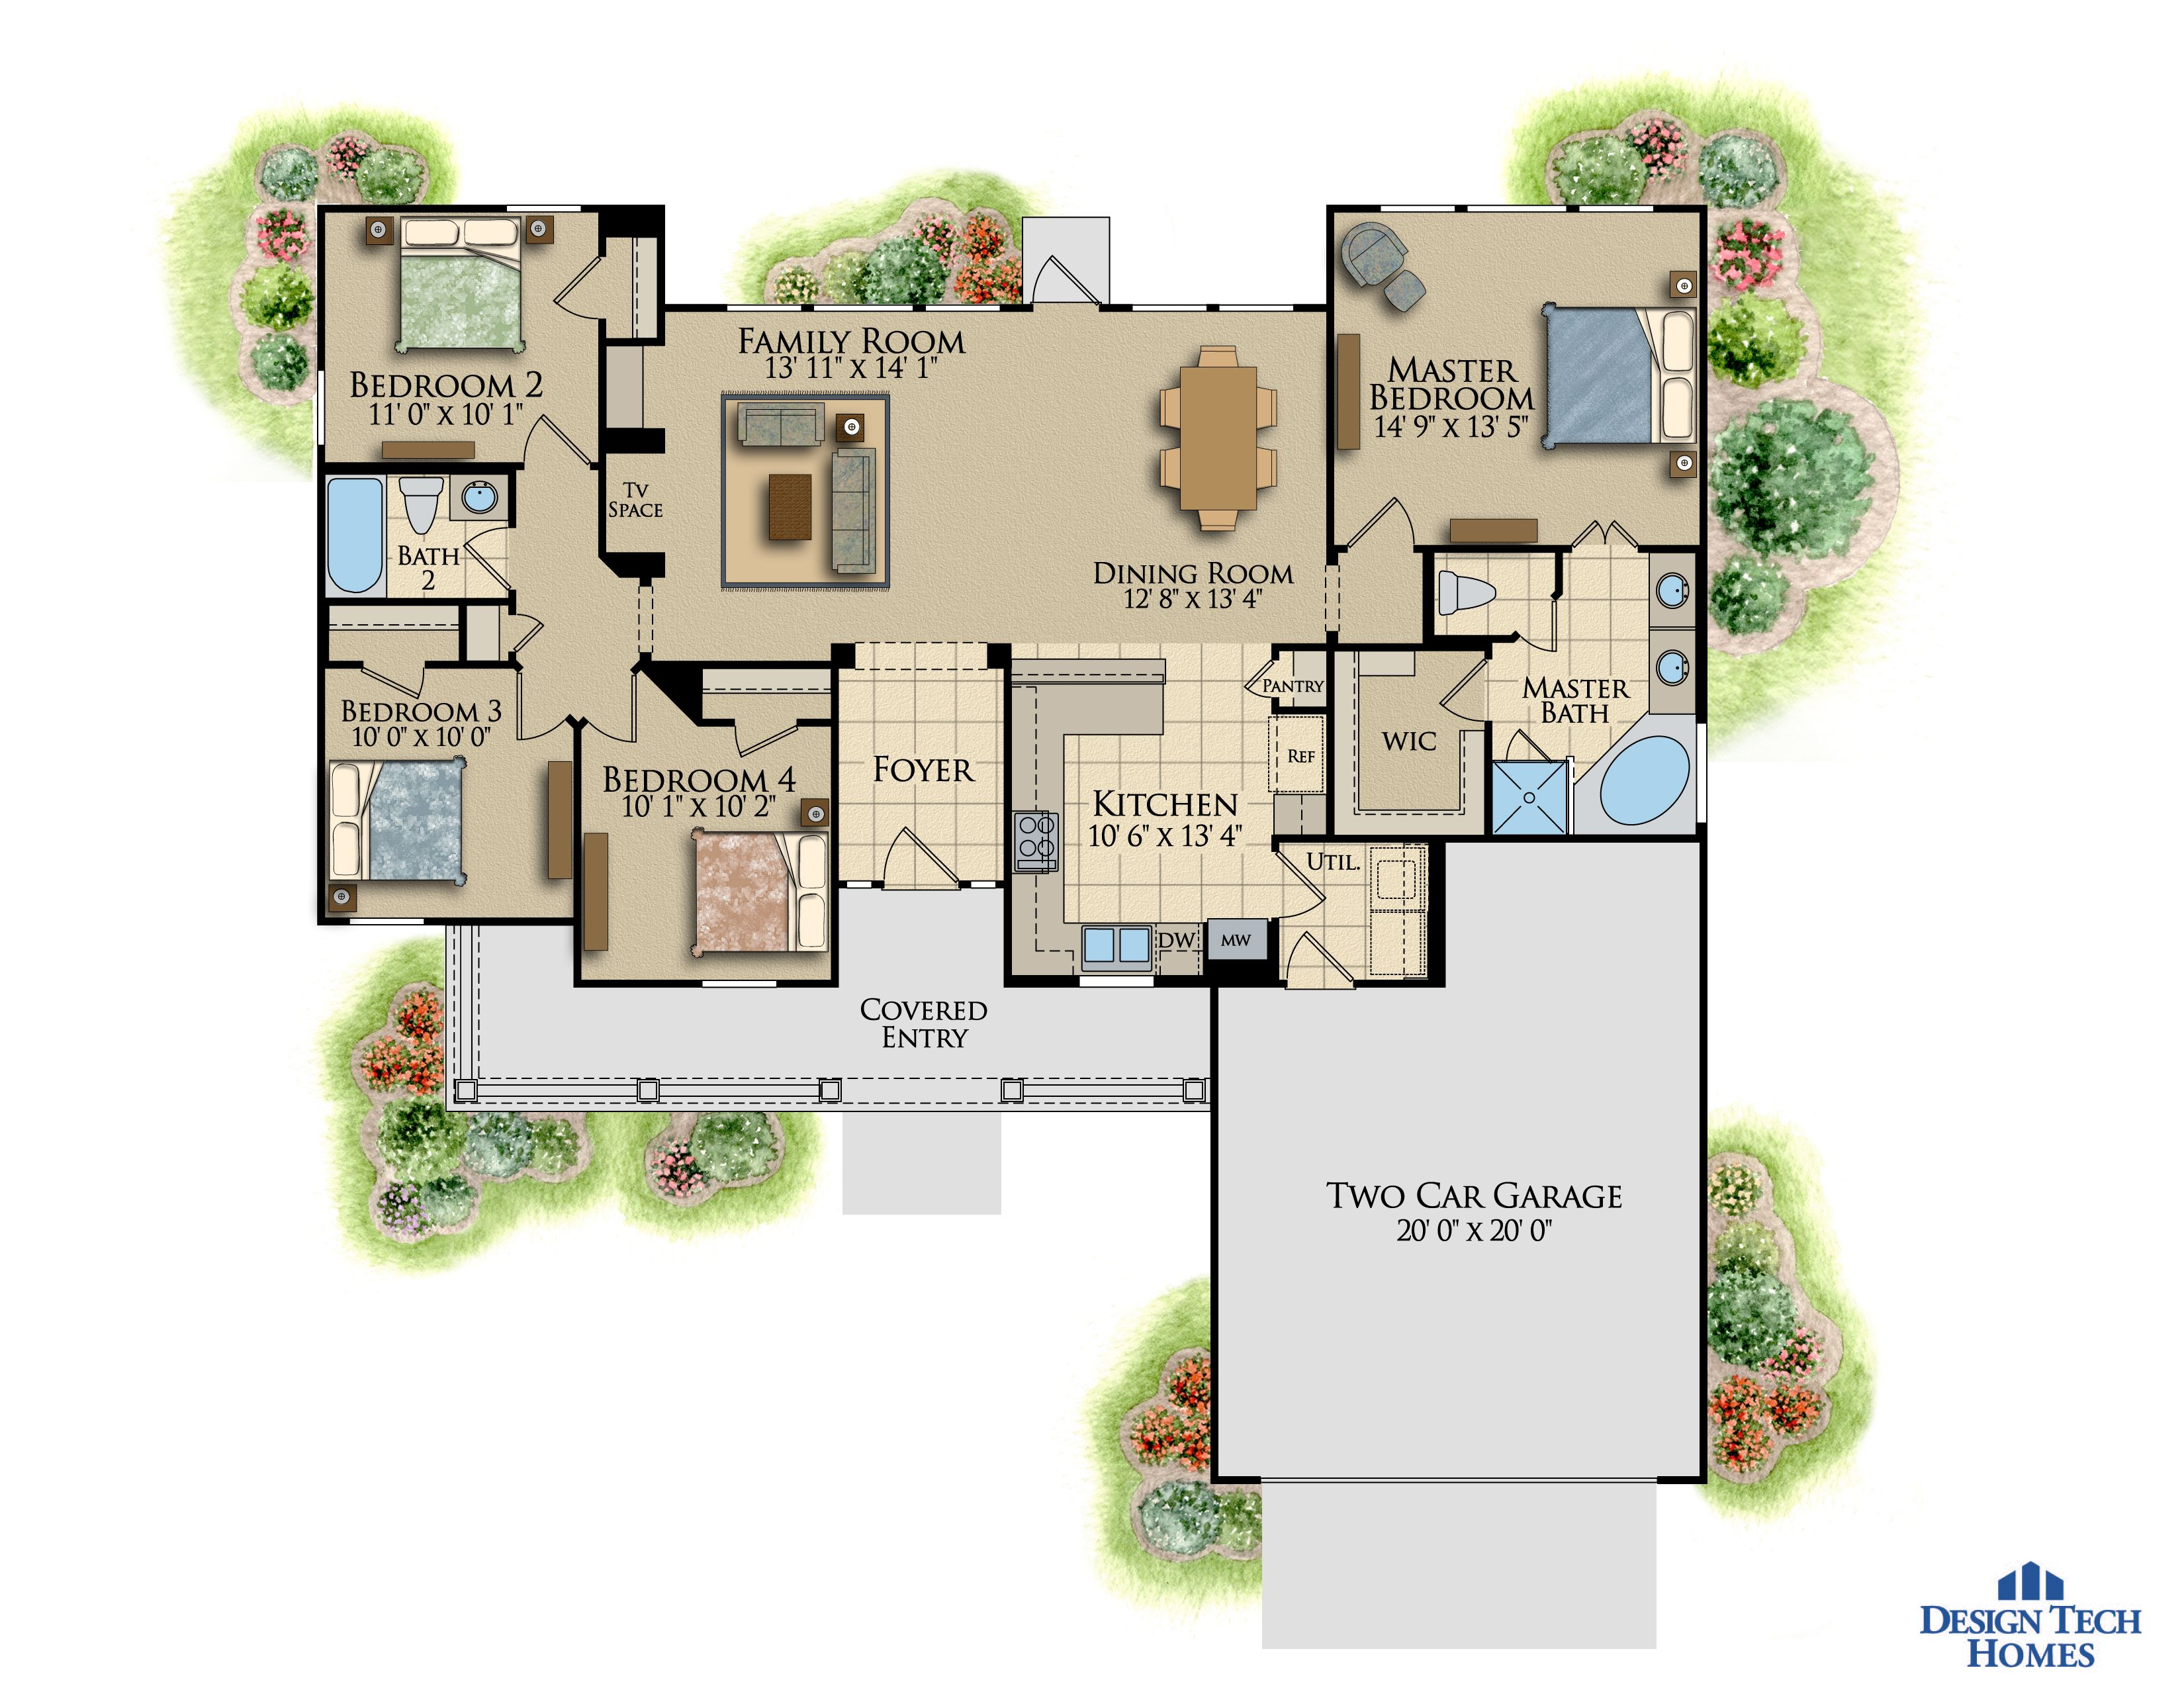 1,534 Sq Ft House Plan - 4 Bed 2 Bath, 1 Story - The Somersby ...